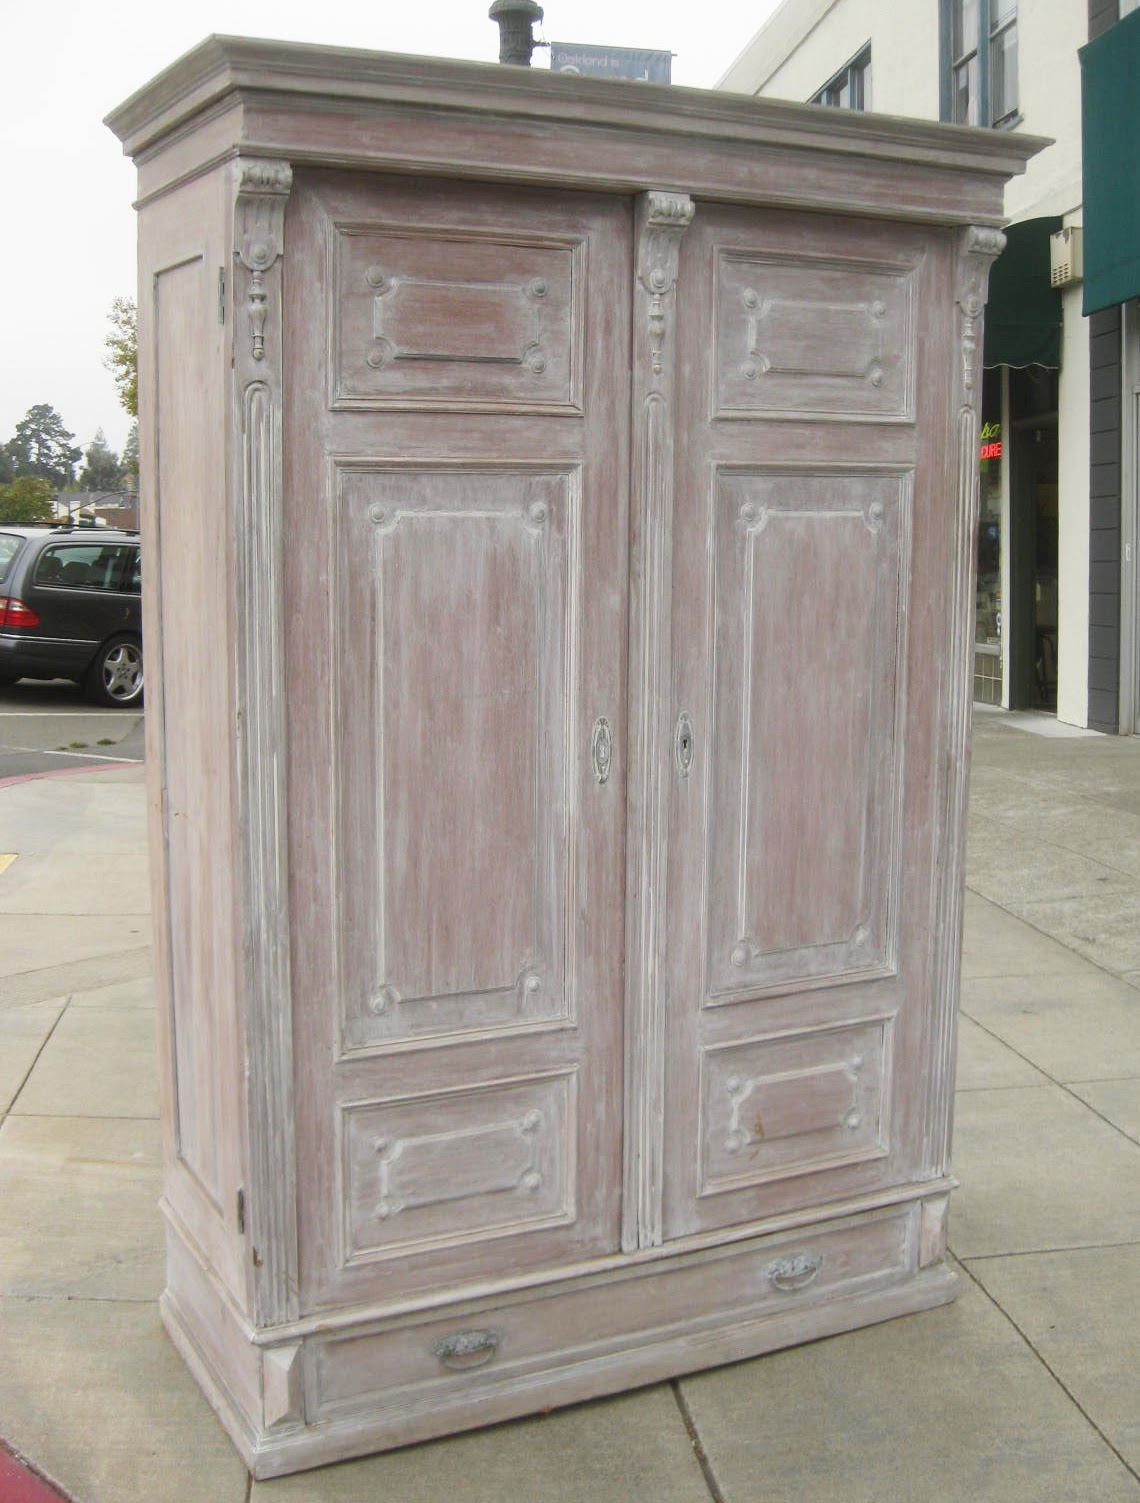 Marvelous photograph of UHURU FURNITURE & COLLECTIBLES: SOLD Shabby Chic Clothing Armoire  with #365959 color and 1140x1503 pixels